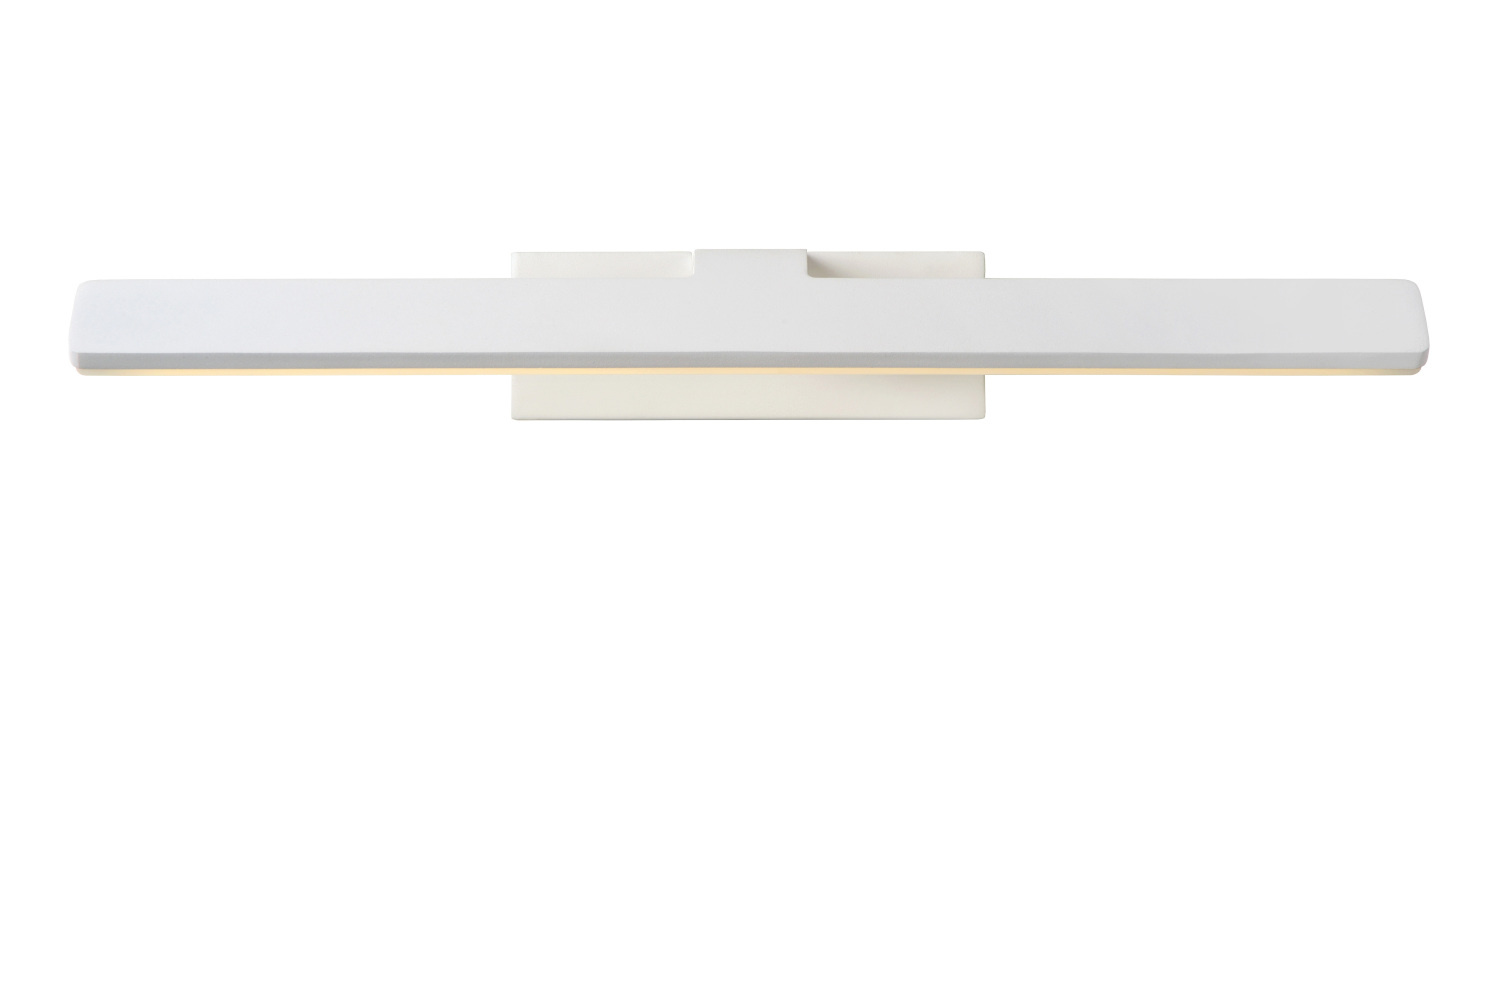 Lucide BETHAN Wandlicht LED 8W L46.5cm 685LM 3000K Wit